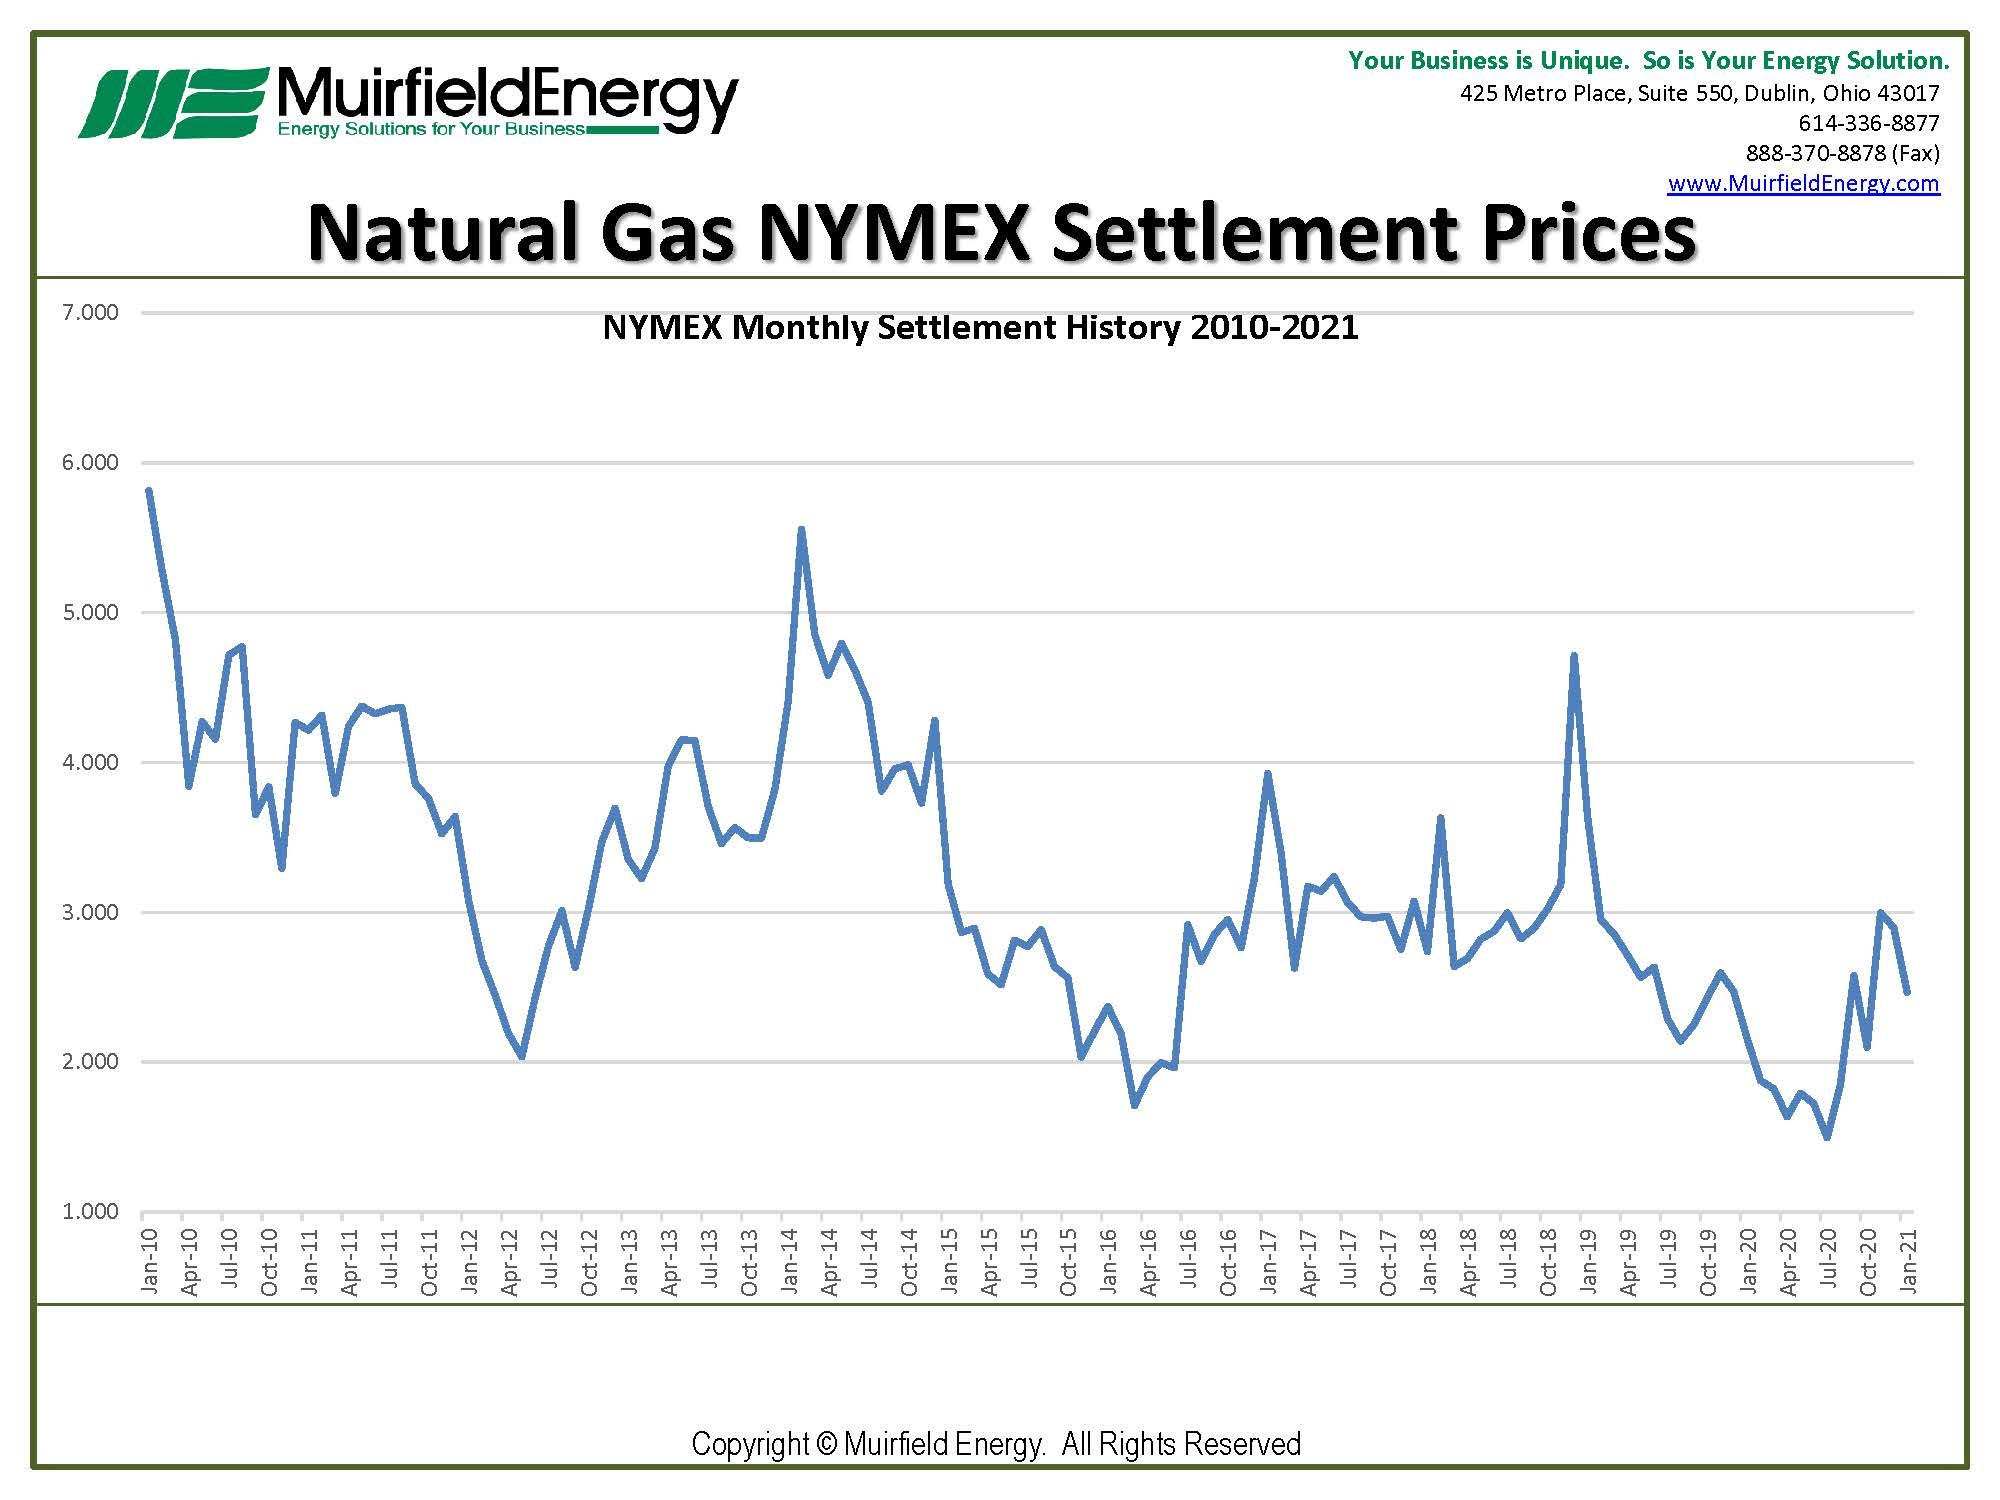 January 2021 NYMEX natural gas contract settled at $2.467